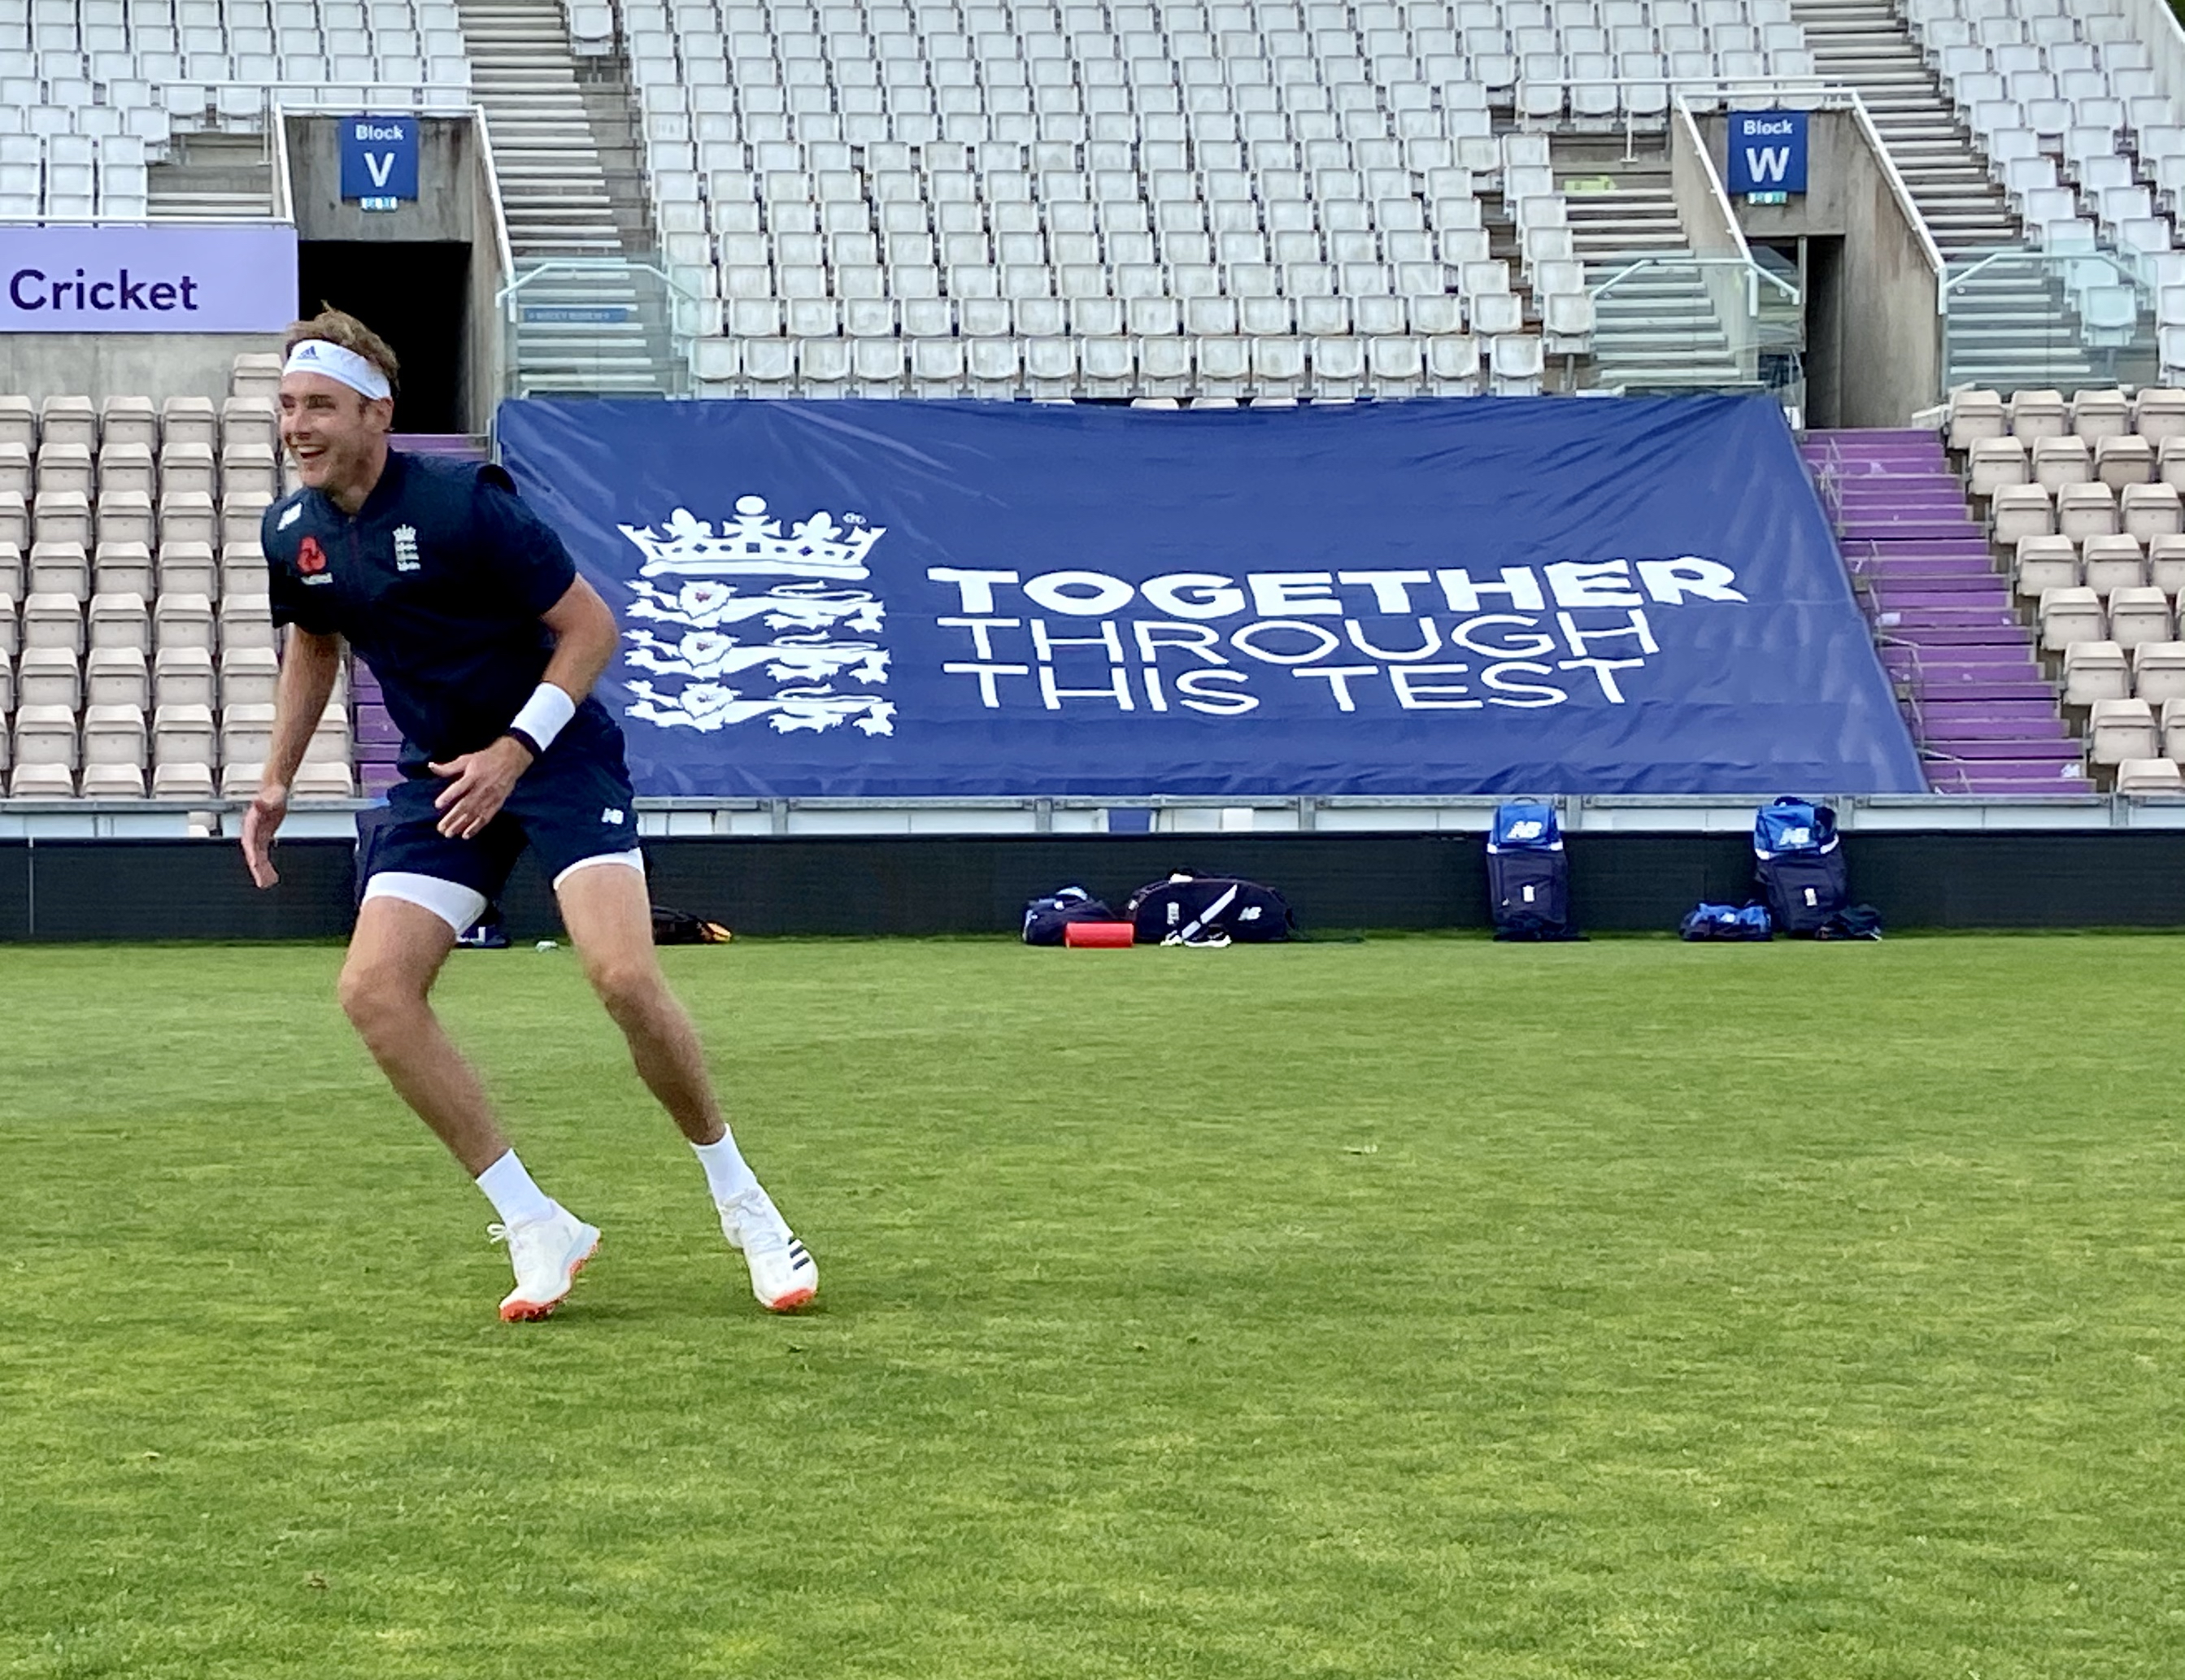 Stuart Broad trains ahead of the Test series against the West Indies